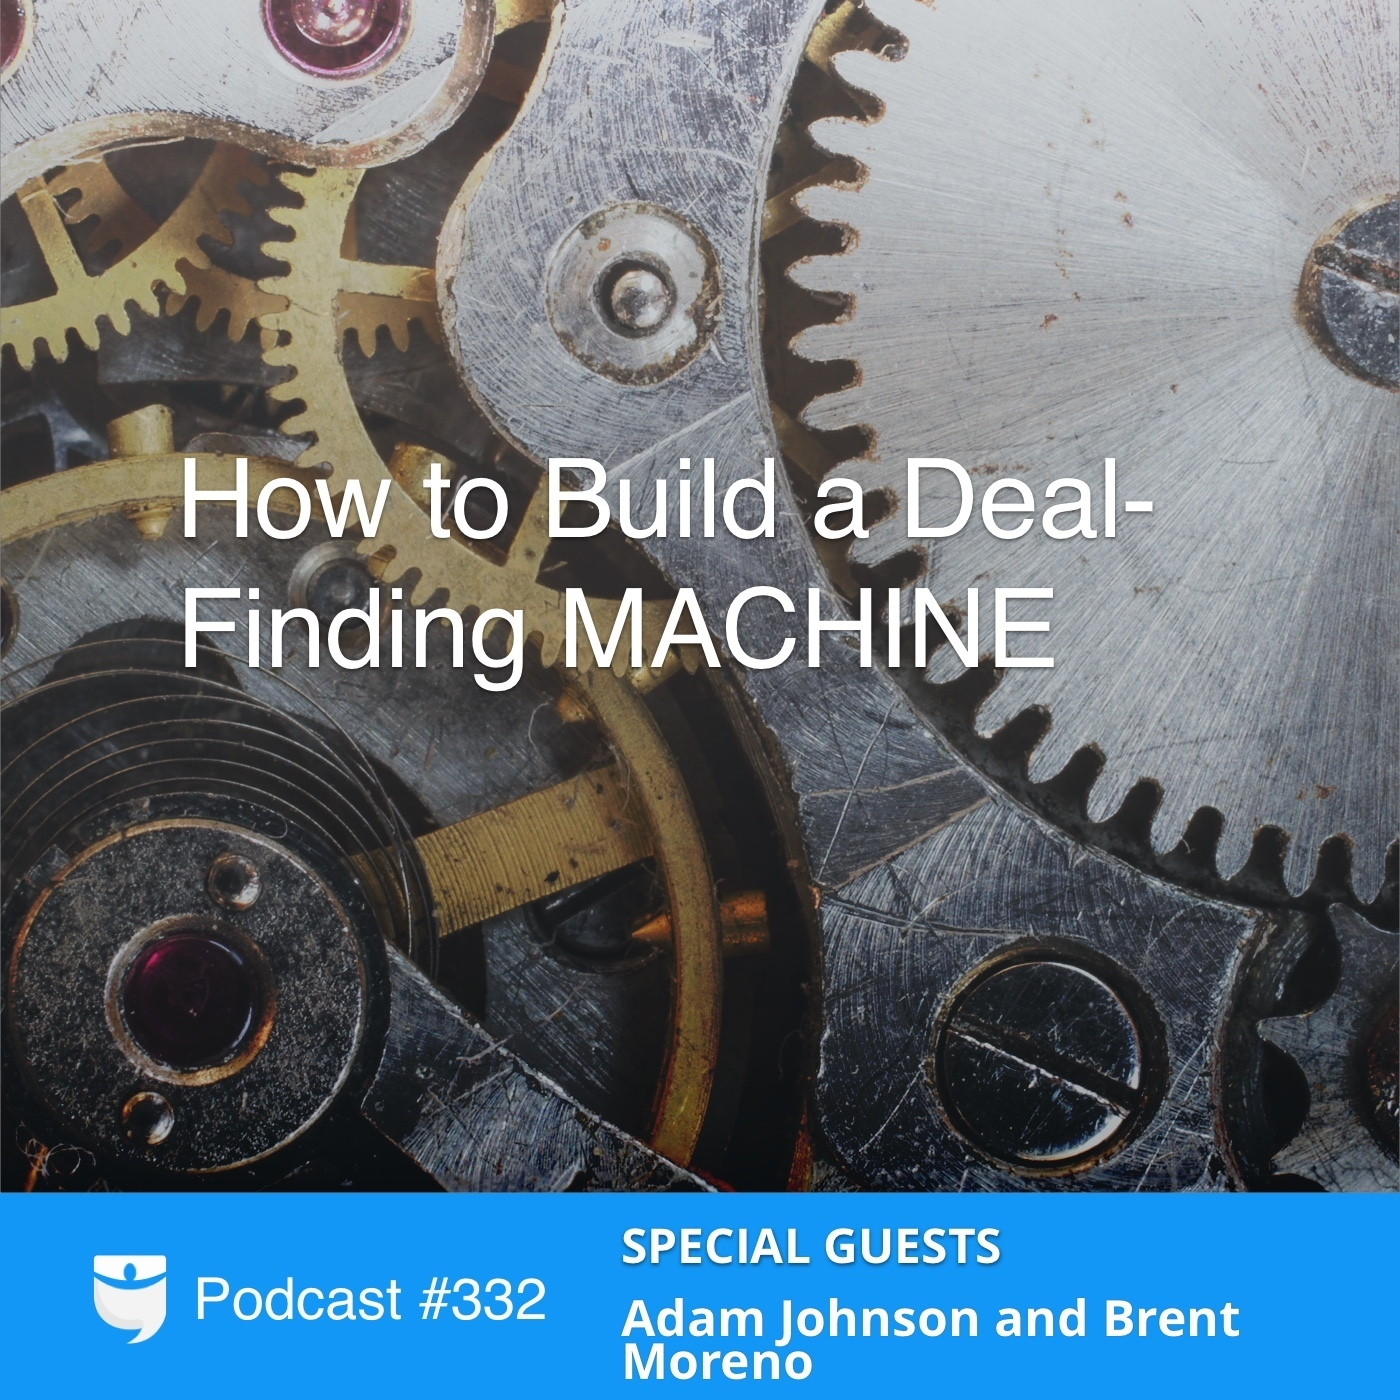 #332: How to Build a Deal-Finding MACHINE with Adam Johnson and Brent Moreno